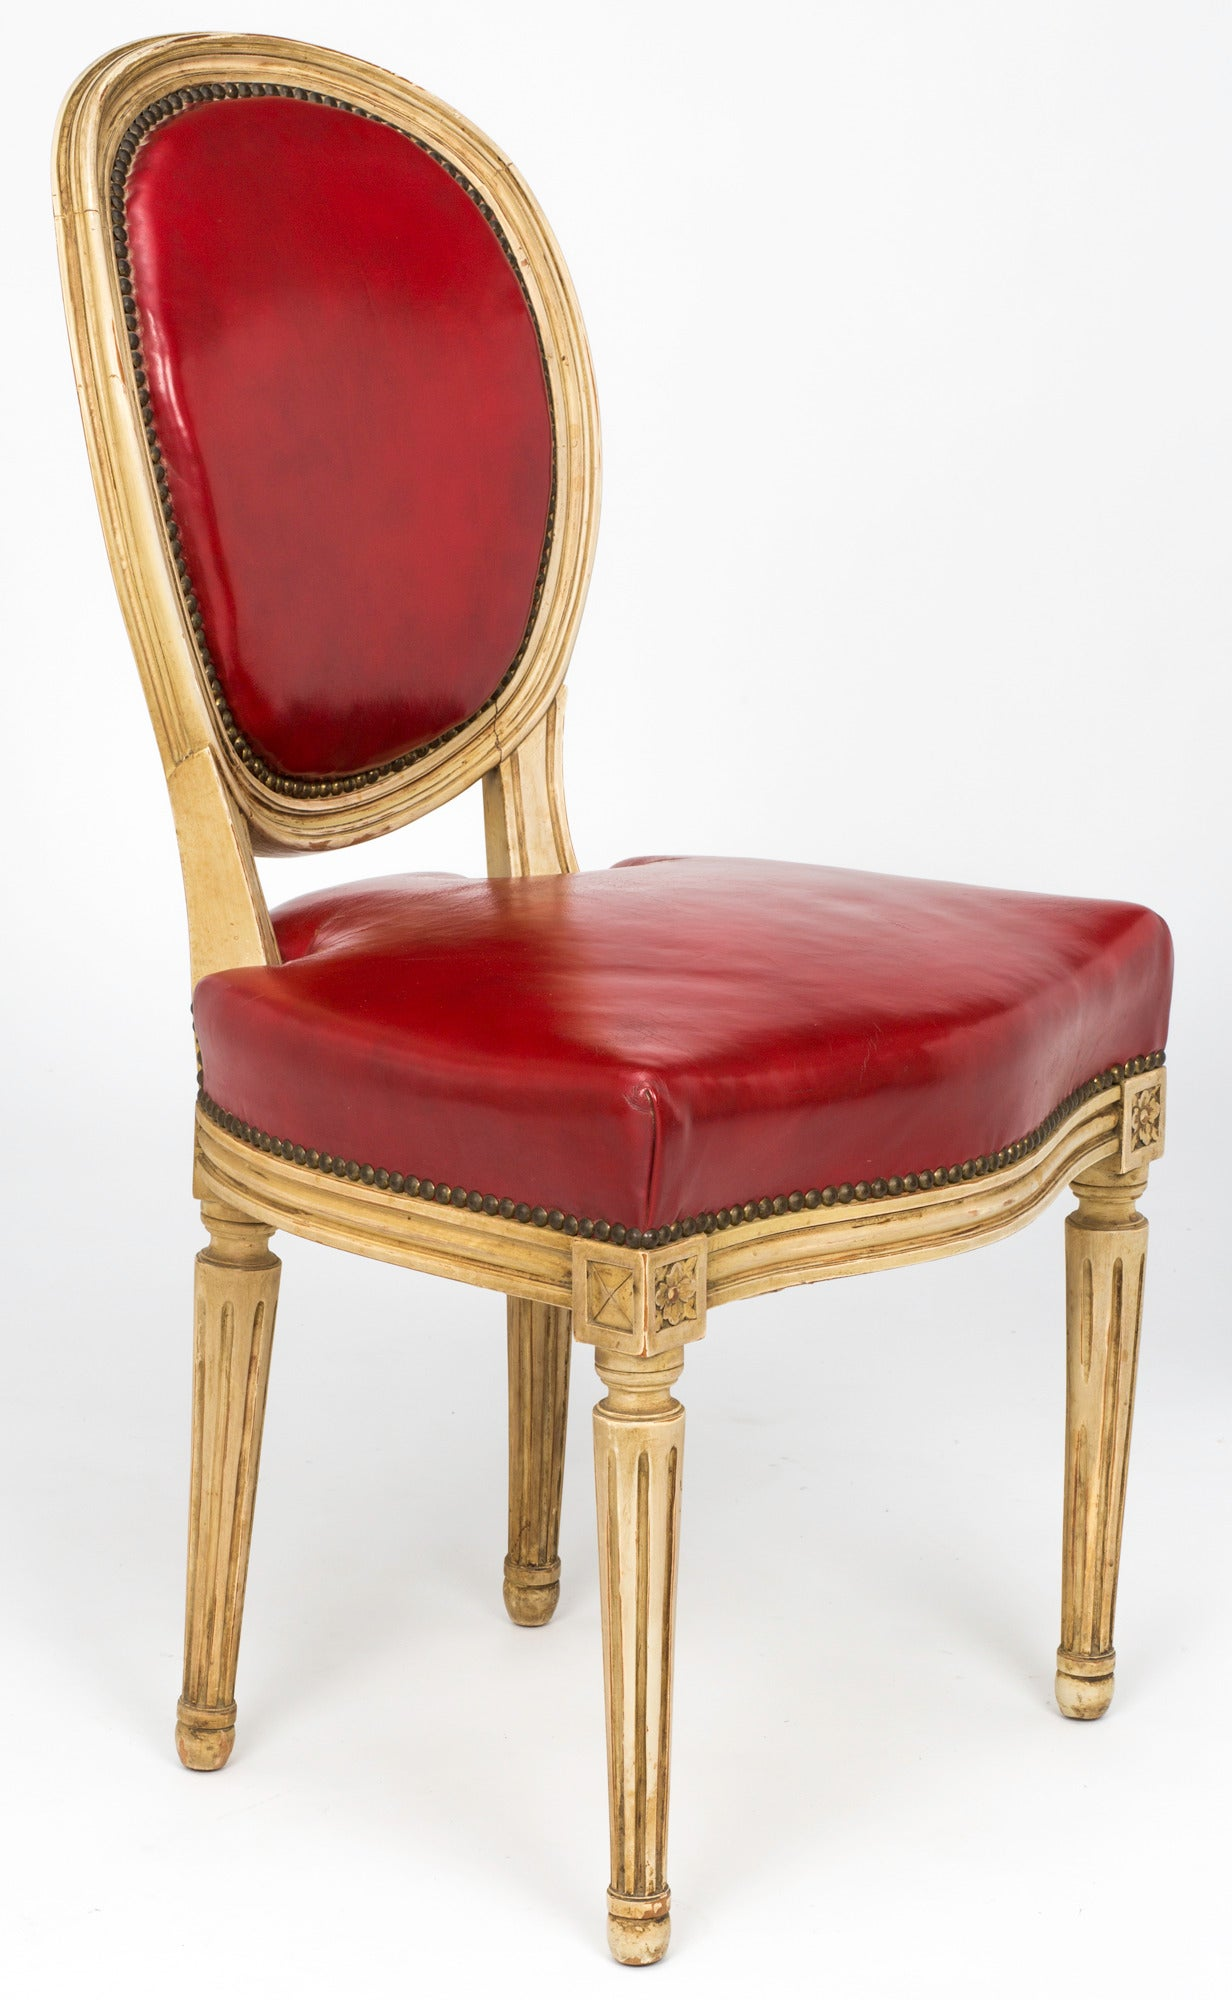 Pair Of French Louis Xvi Style Red Leather Chairs 19th